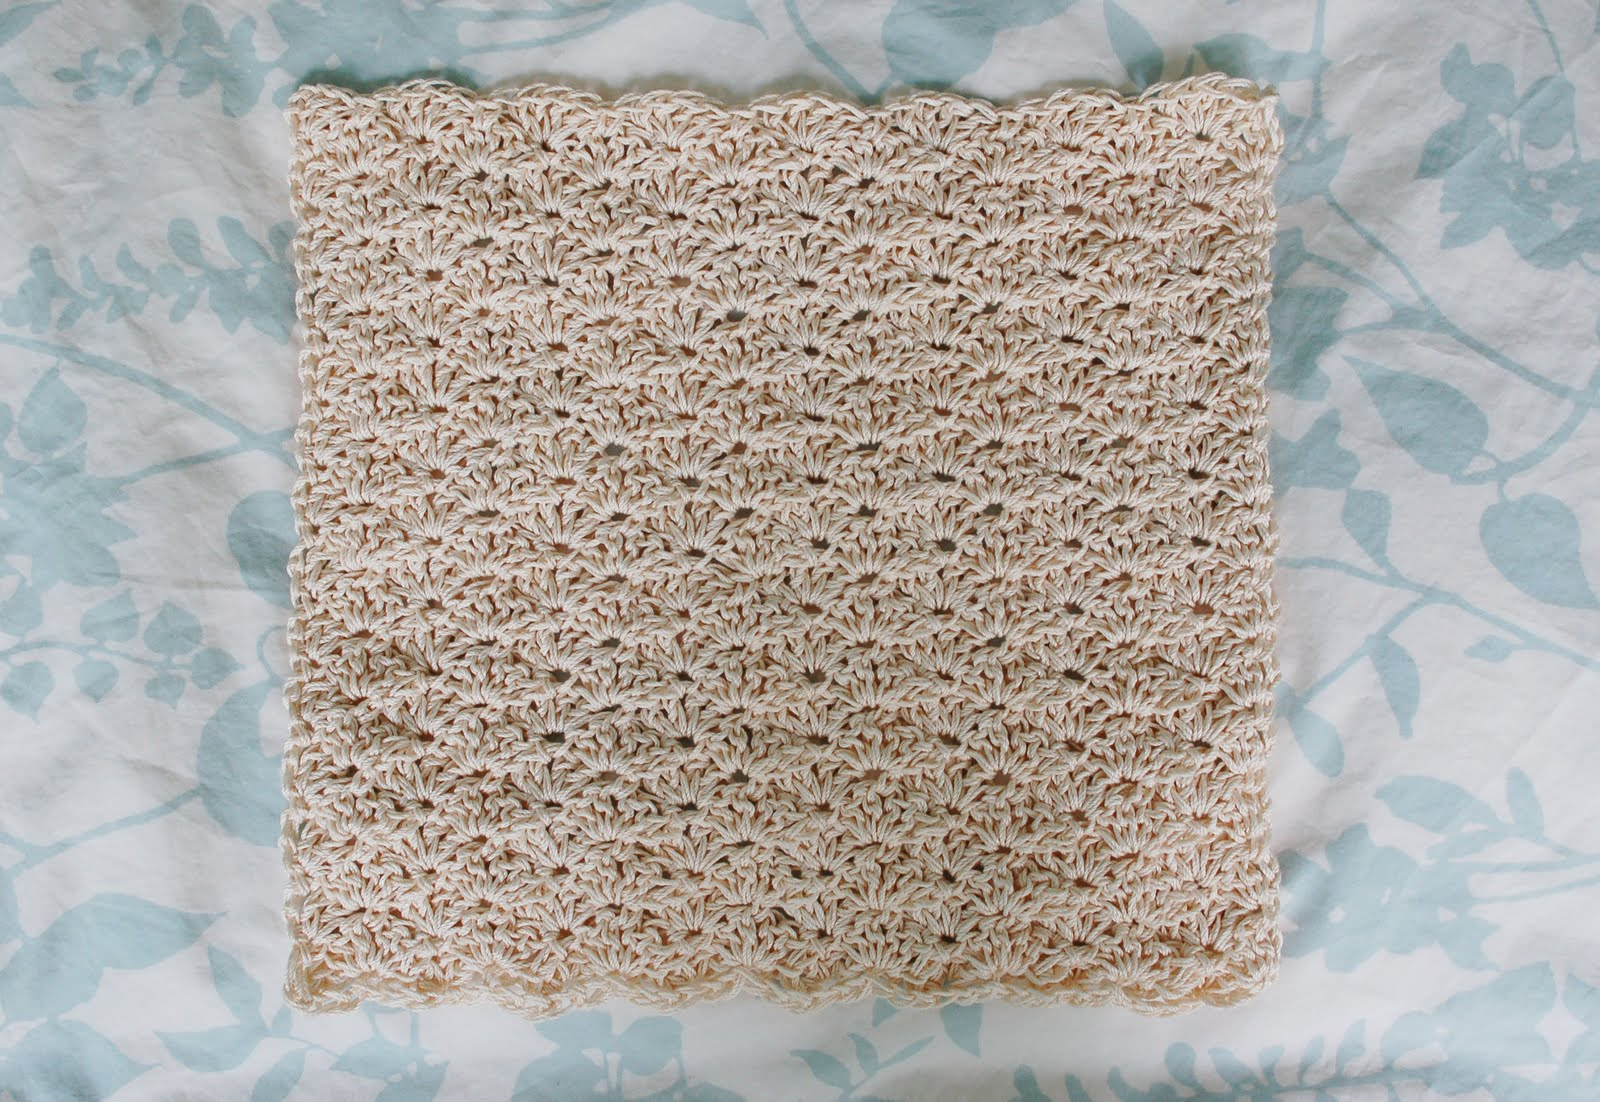 COTTON CROCHET FREE PATTERN COTTON CROCHET FREE PATTERN YARN ?